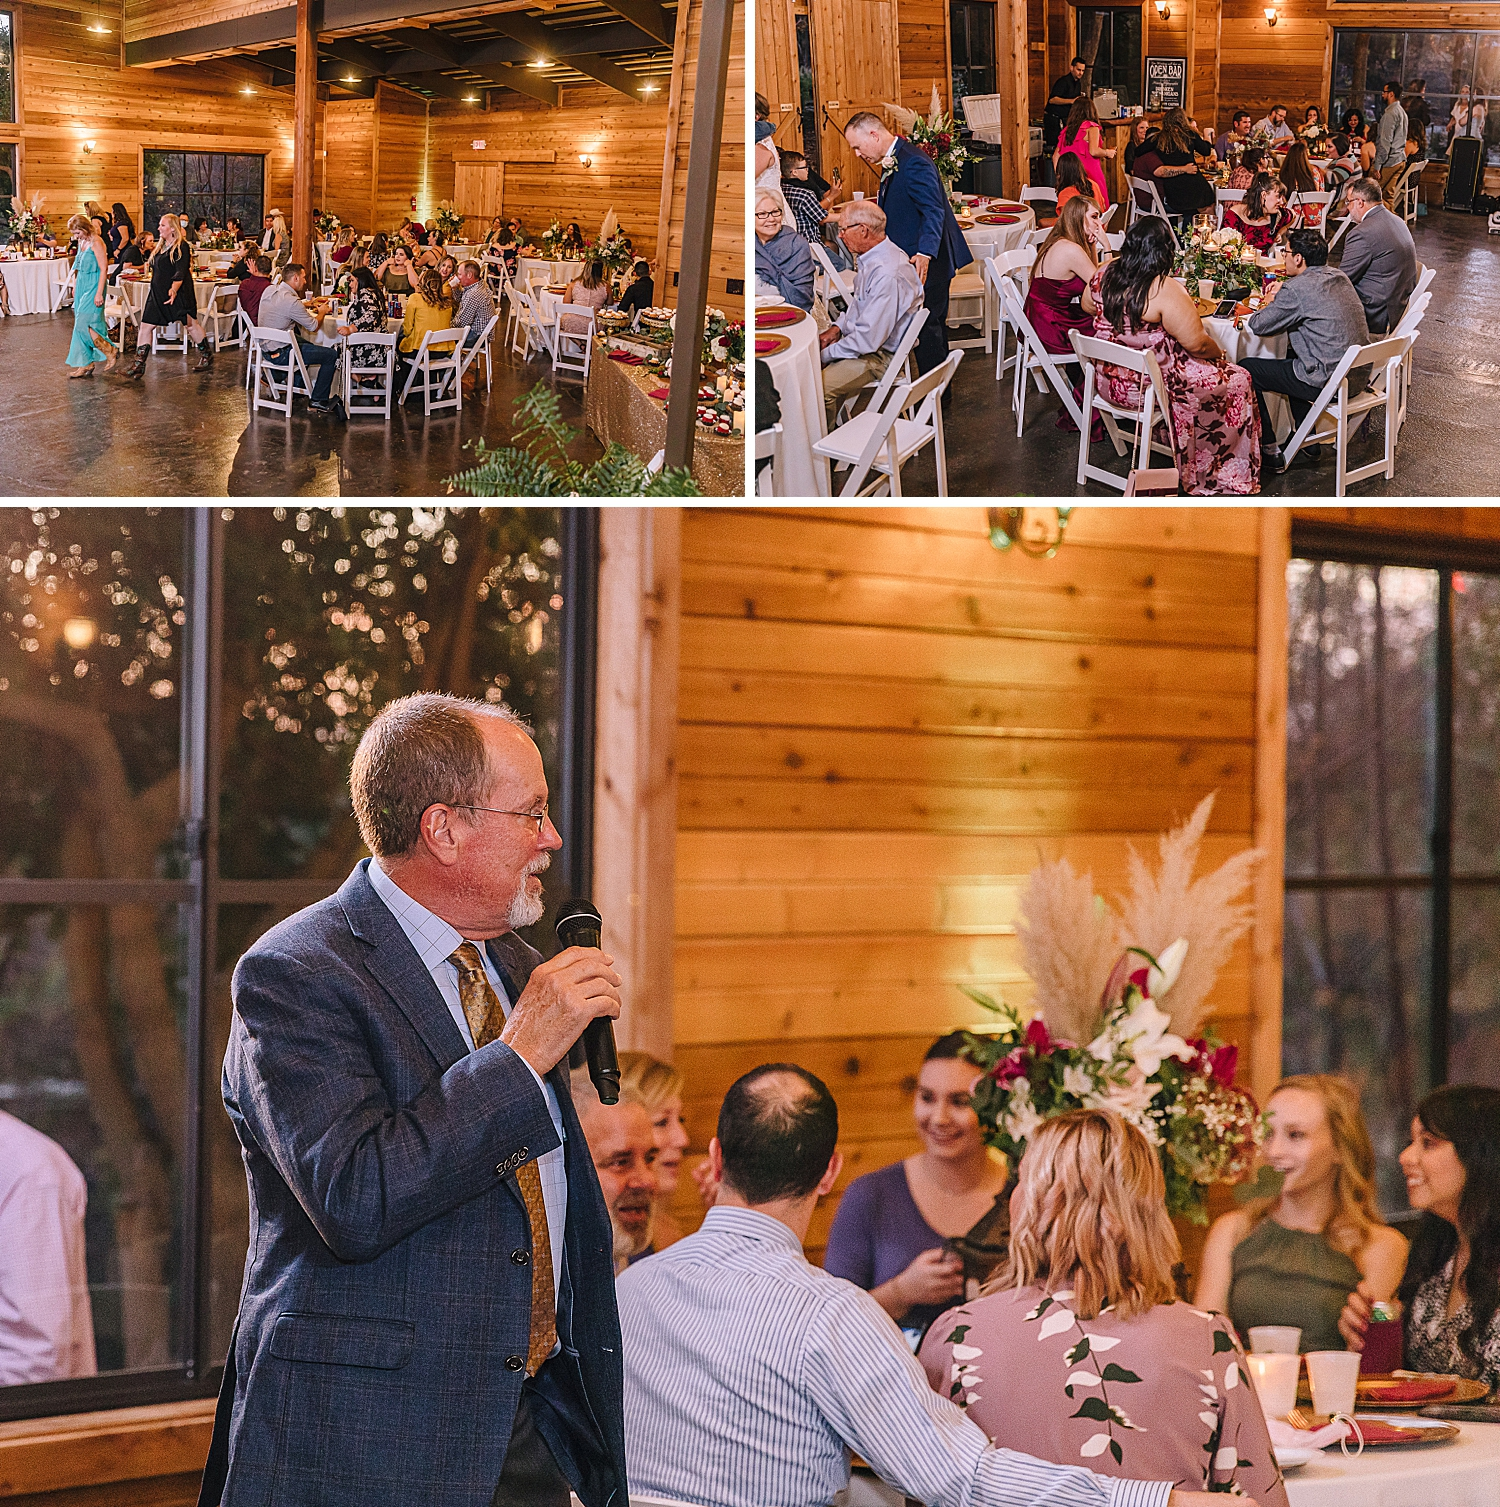 Geronimo-Oaks-Wedding-Venue-Seguin-Texas-Elegant-Navy-Burgundy-Wedding-Carly-Barton-Photography_0066.jpg